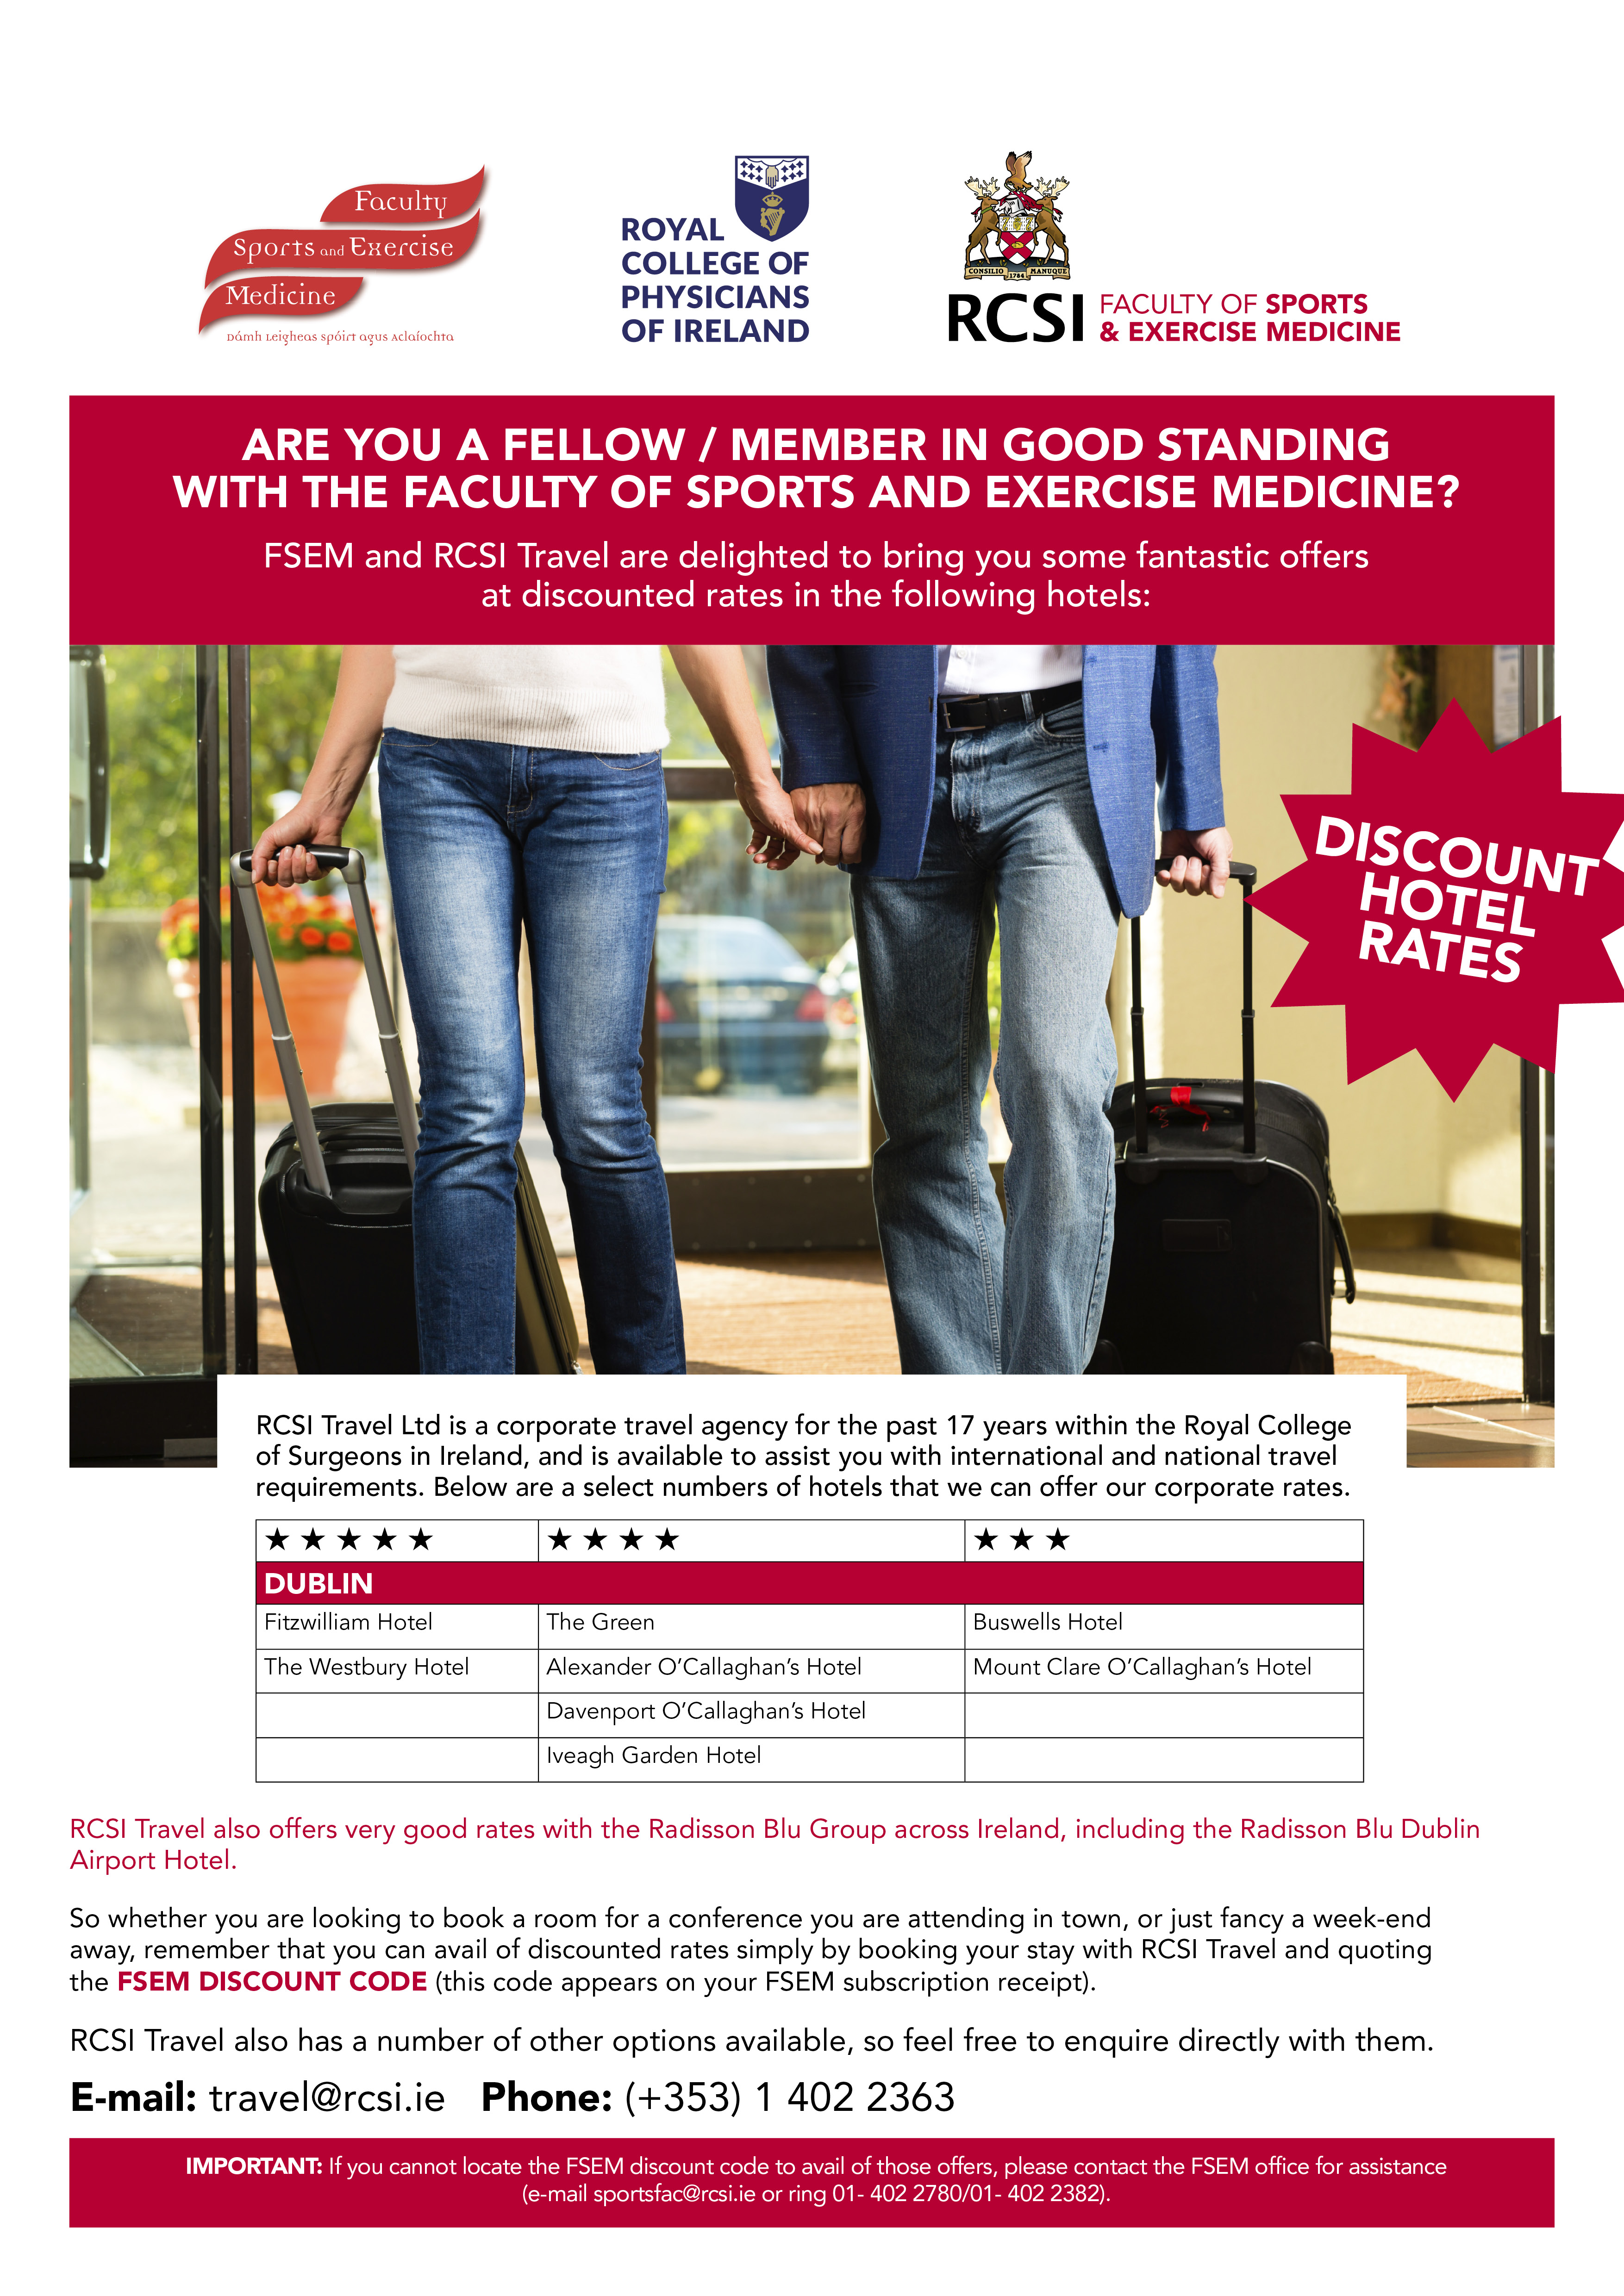 AD3832 FSEM FM RCSI Travel Hotel discount flyer FINAL